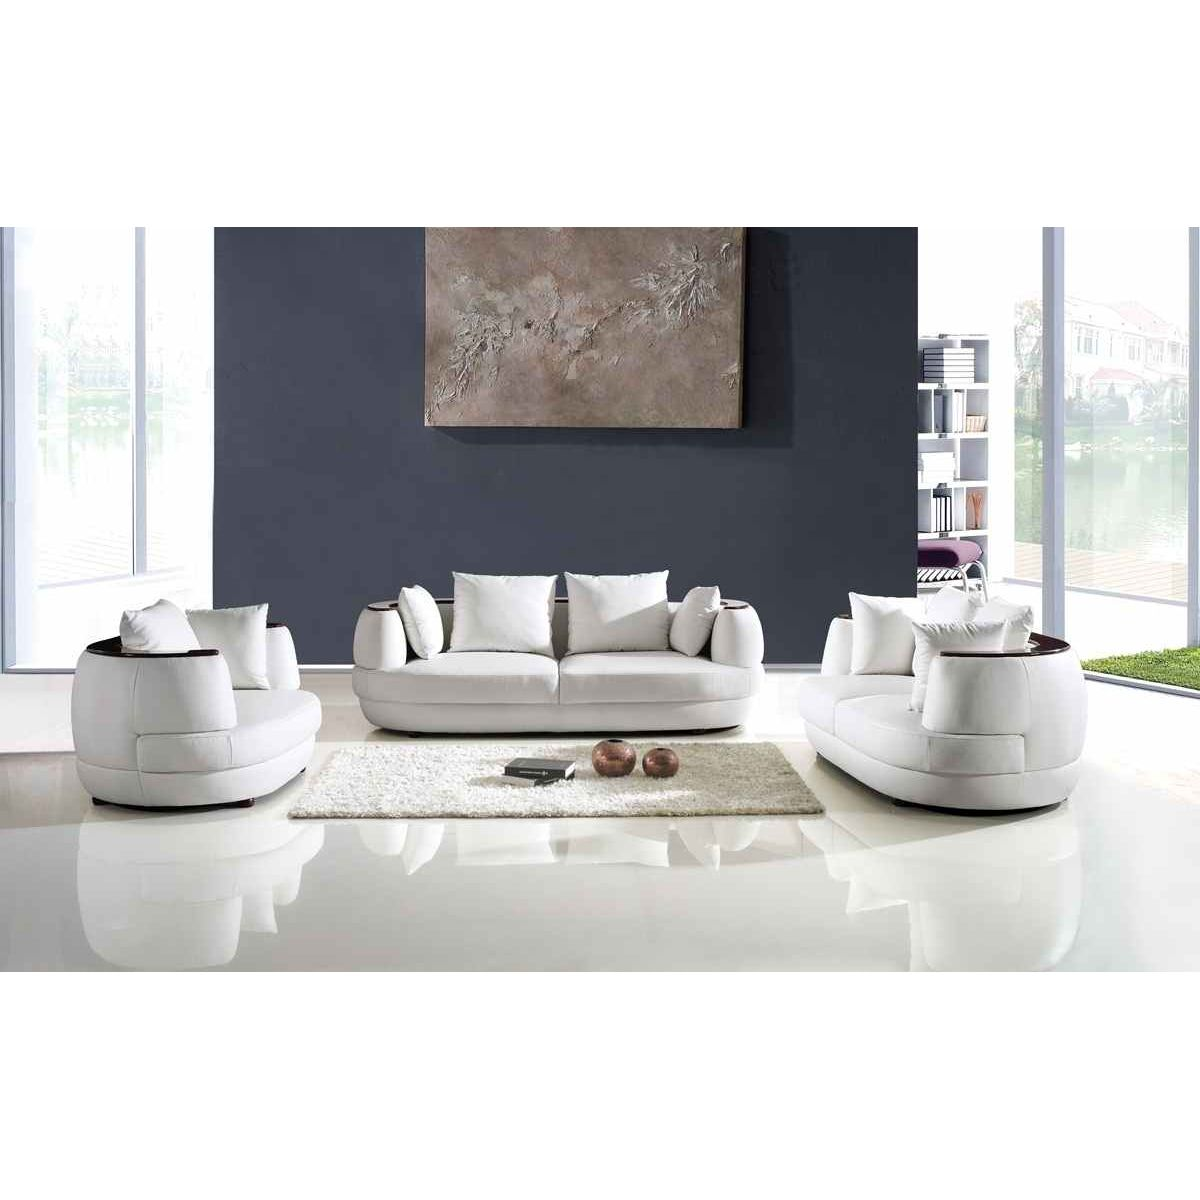 deco in paris ensemble canape 3 2 1 places en cuir blanc ryga ryga 321 blanc. Black Bedroom Furniture Sets. Home Design Ideas